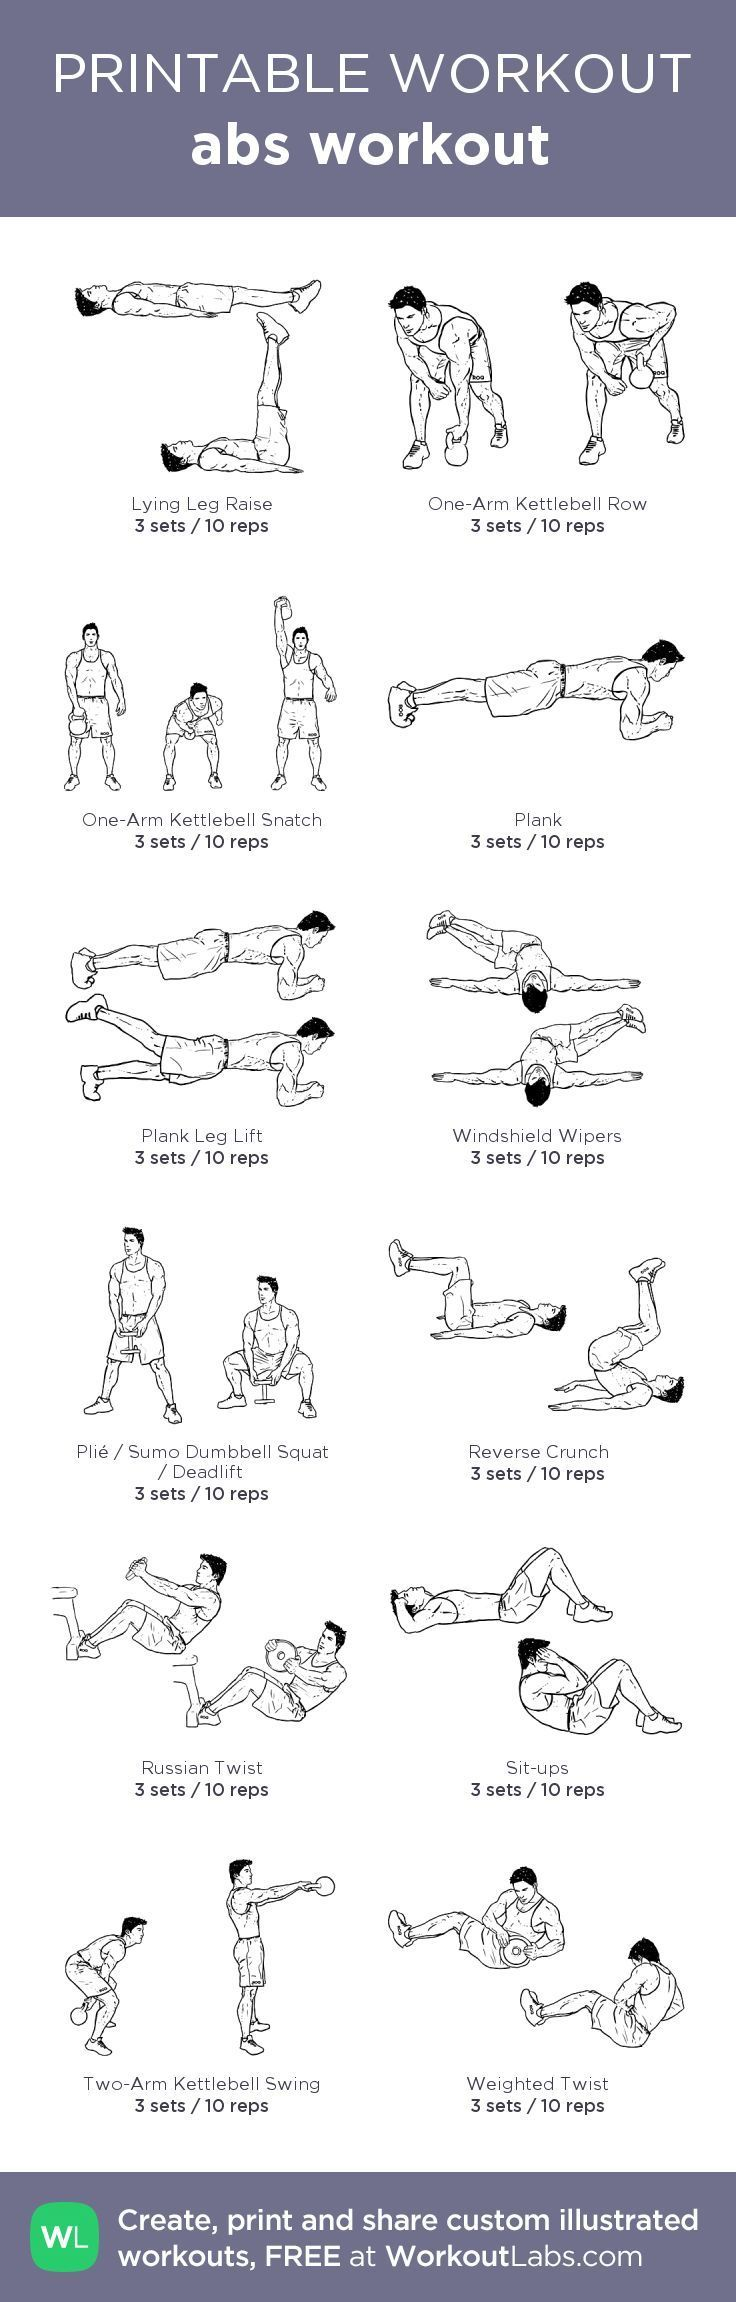 Irresistible image for printable workouts routines